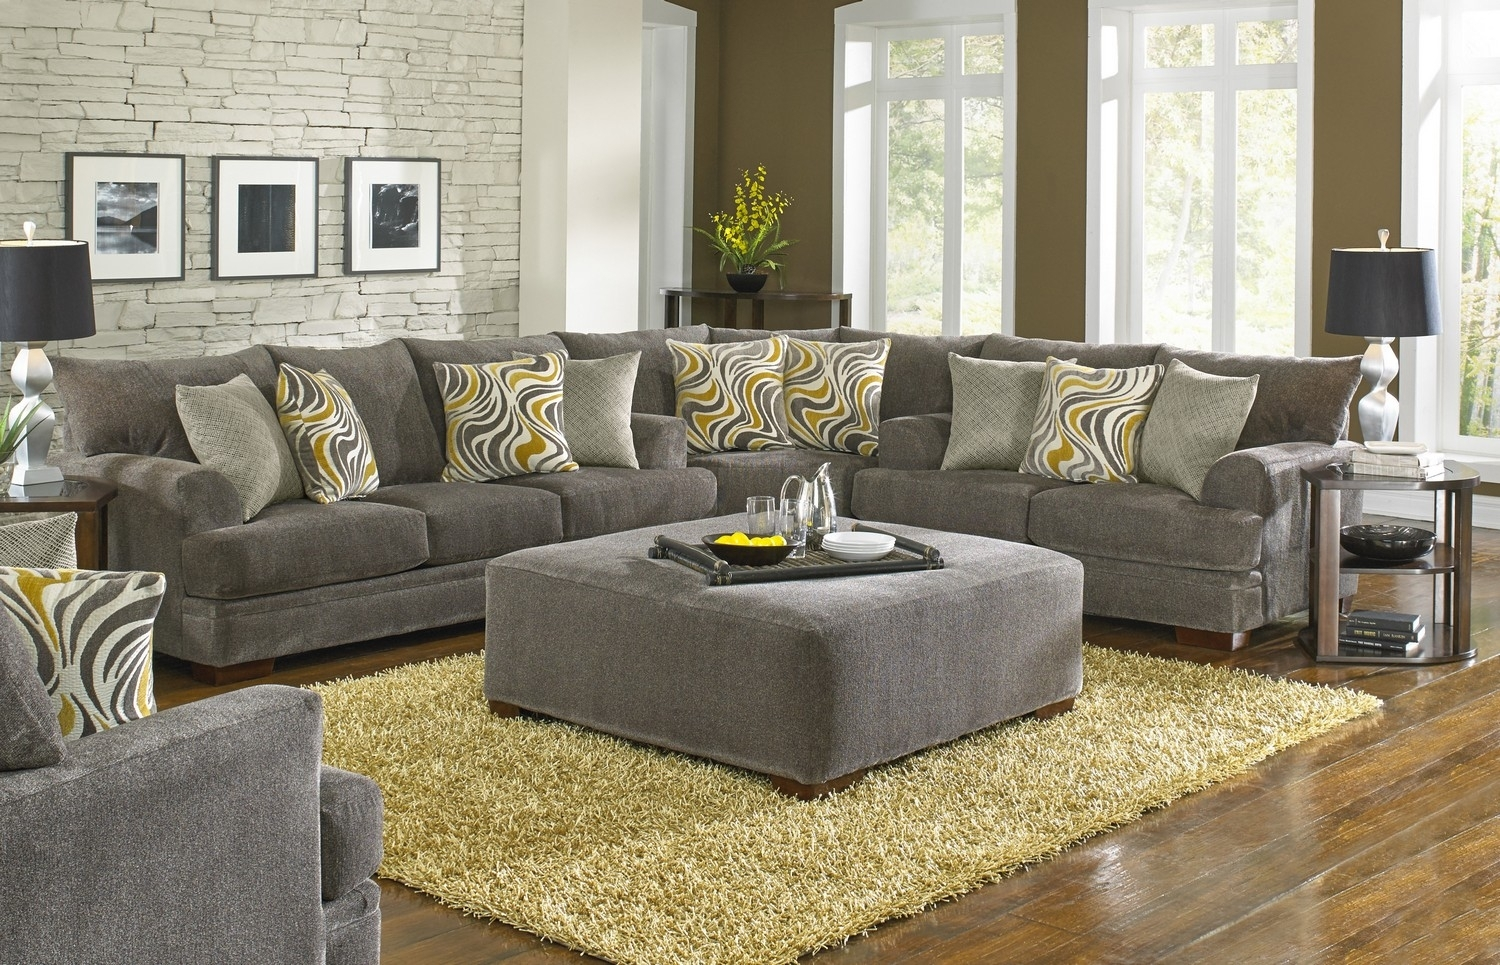 Jackson Crompton Sofa Sectional Sofa Set - Pewter Jf-4462-Sect-Set inside Dayton Ohio Sectional Sofas (Image 4 of 10)